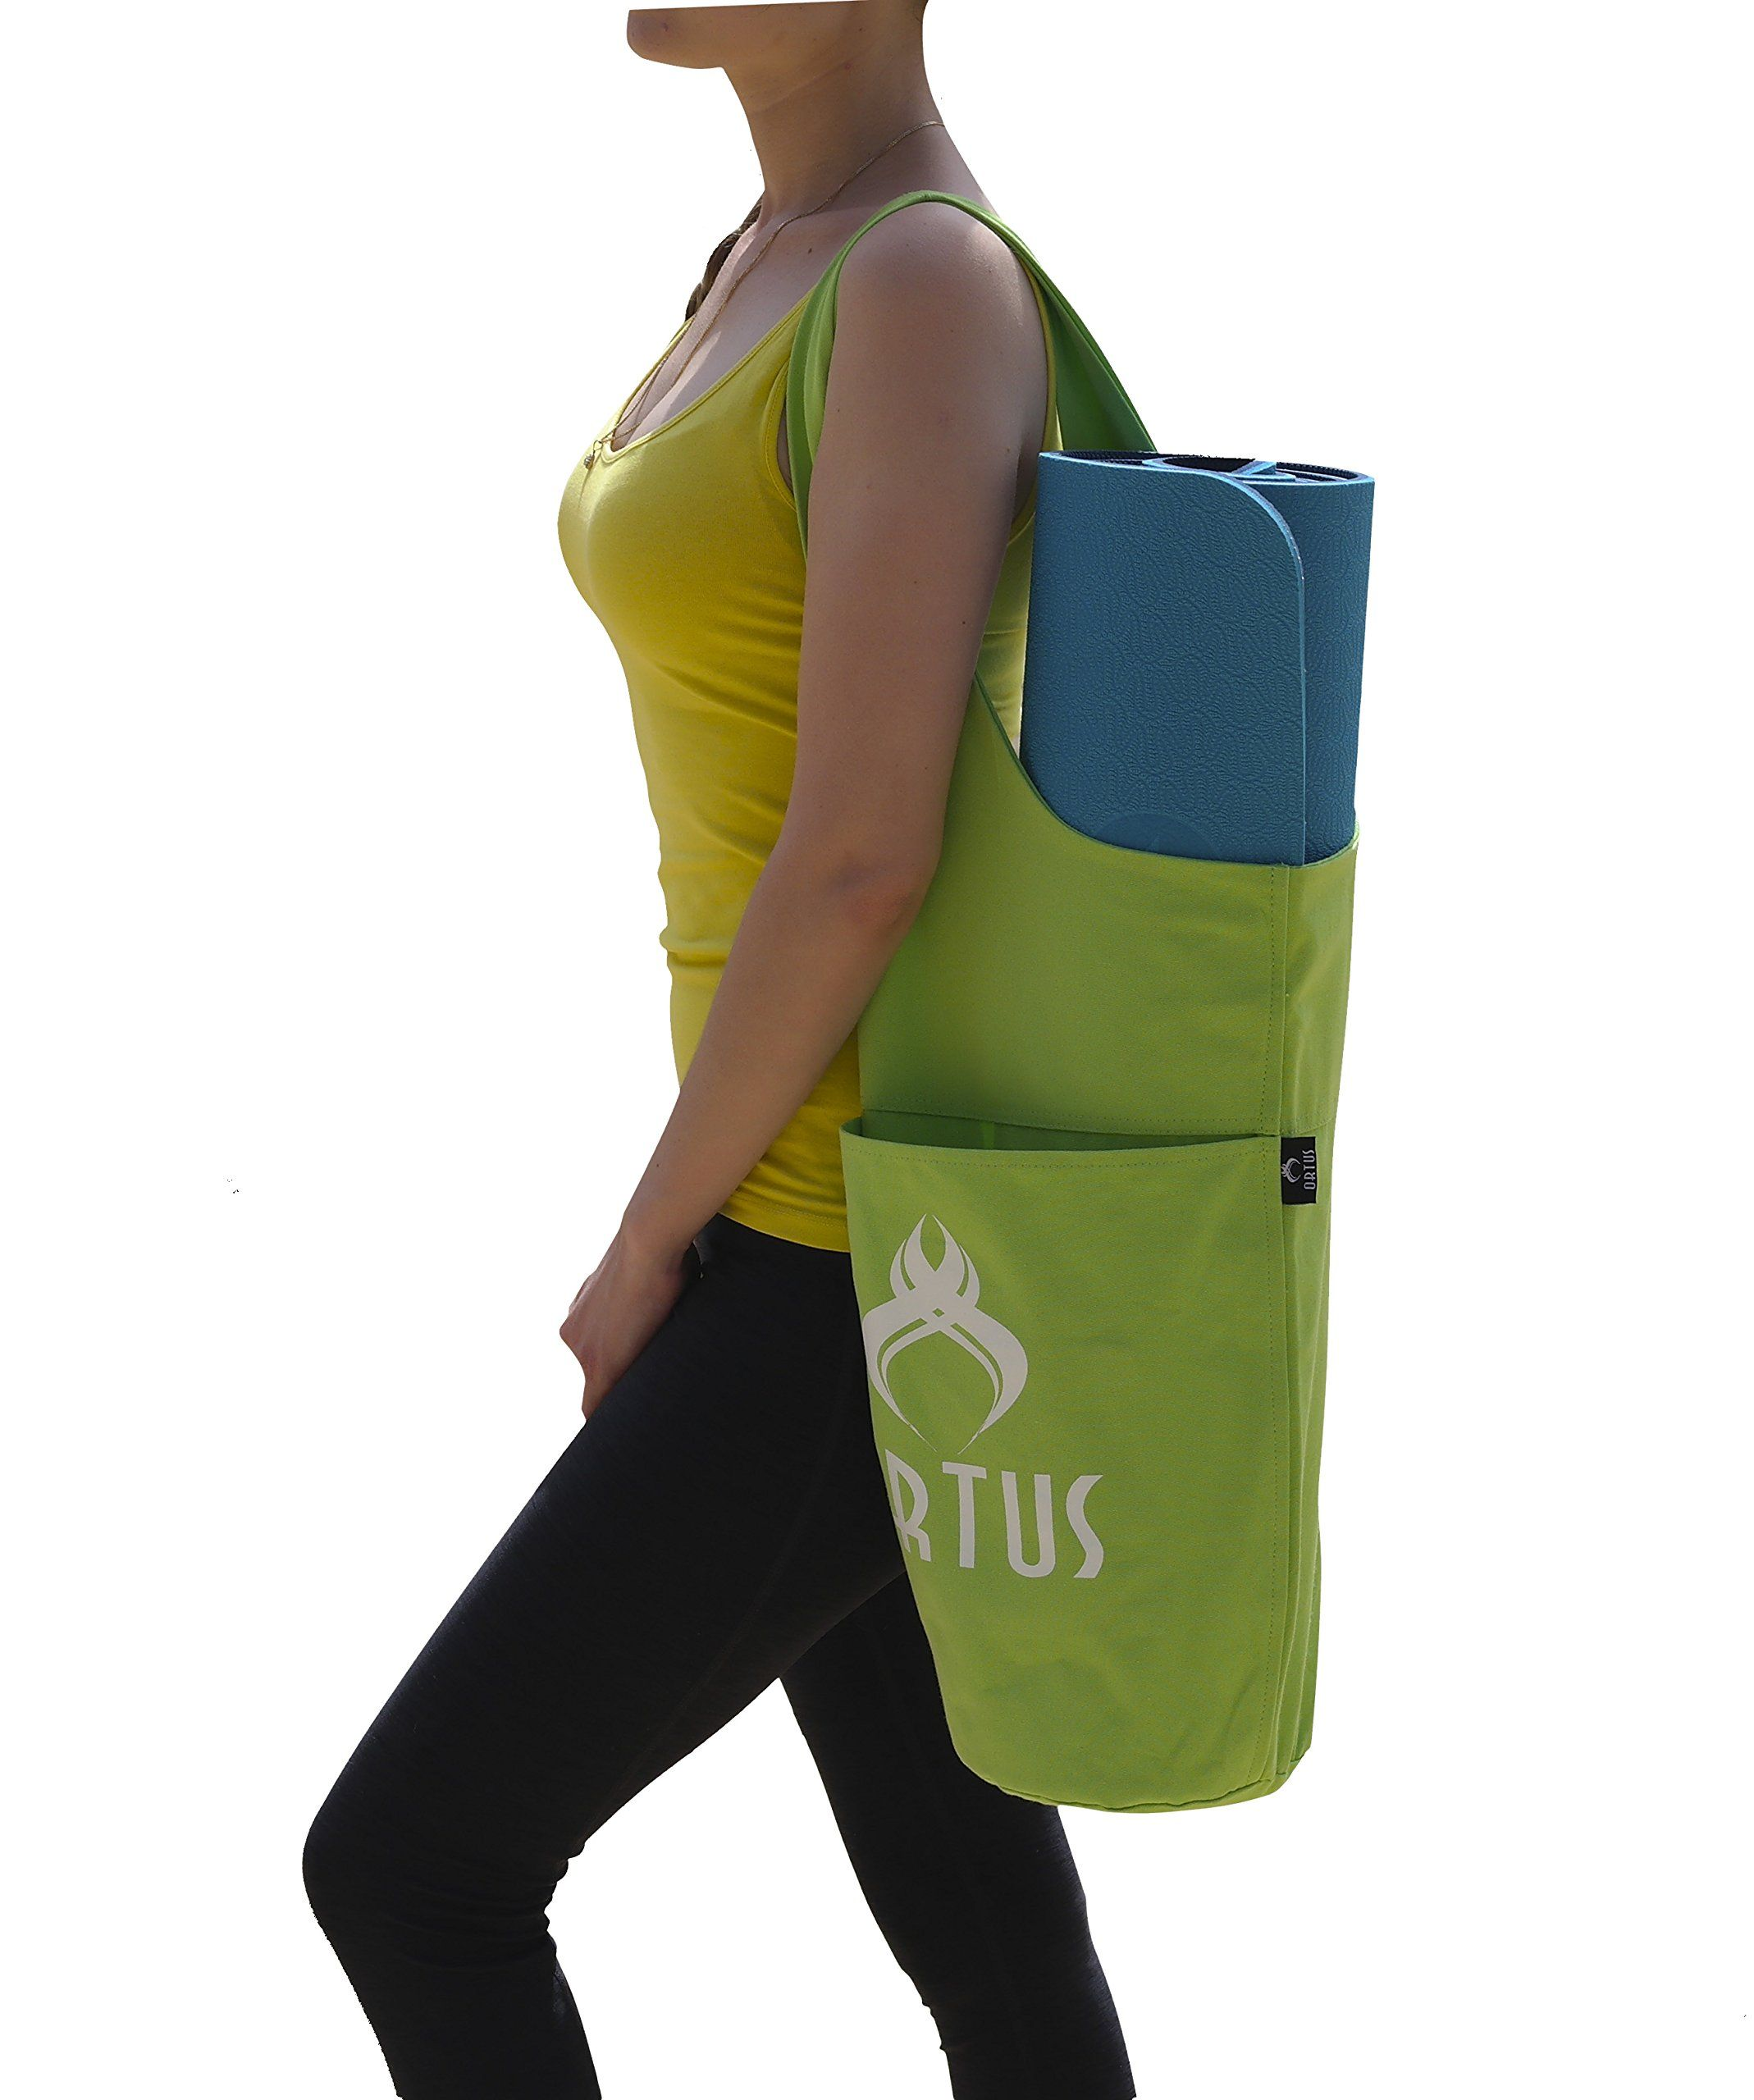 Premium Yoga Mat Bag By Ortus Cotton Yoga Exercise Mat Tote Bags Sling Carrier With Large Side Pocket Ioga Yoga Atelier